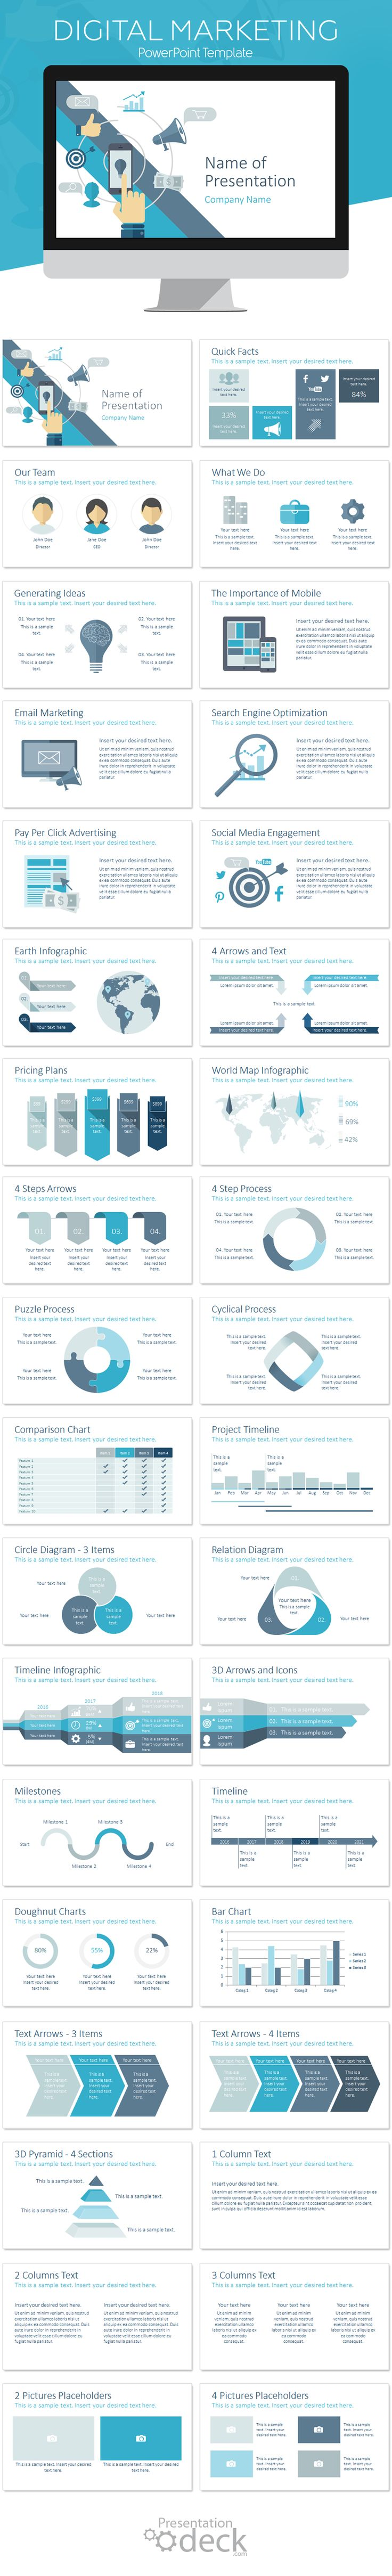 digital marketing powerpoint template | lead generation, flat, Modern powerpoint